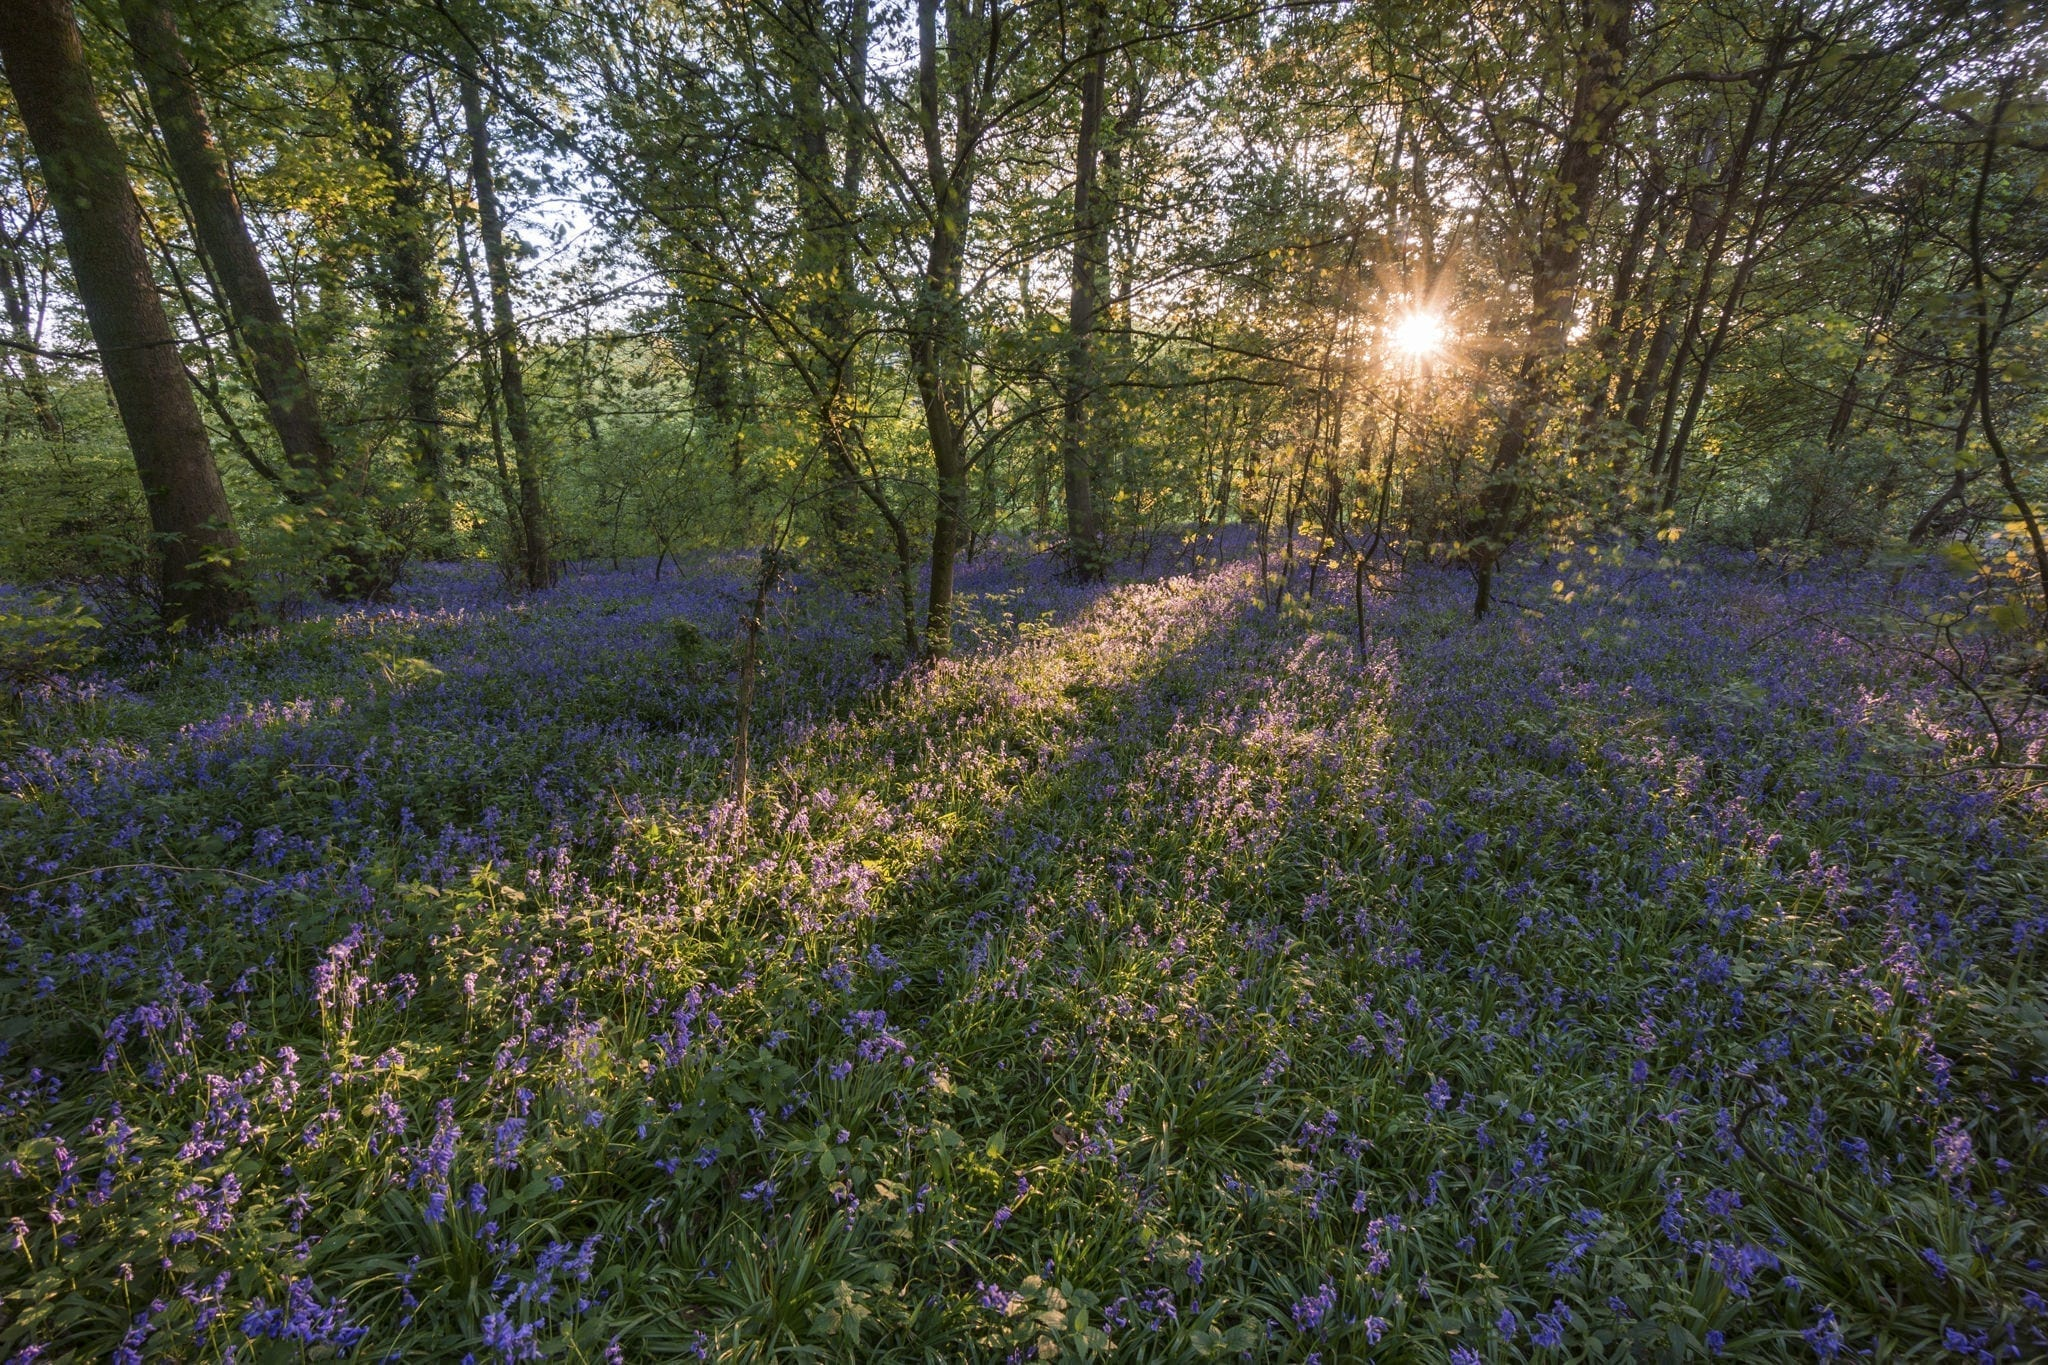 Bluebell Woods Sunset - Bluebells and Woodlands Photography Workshop